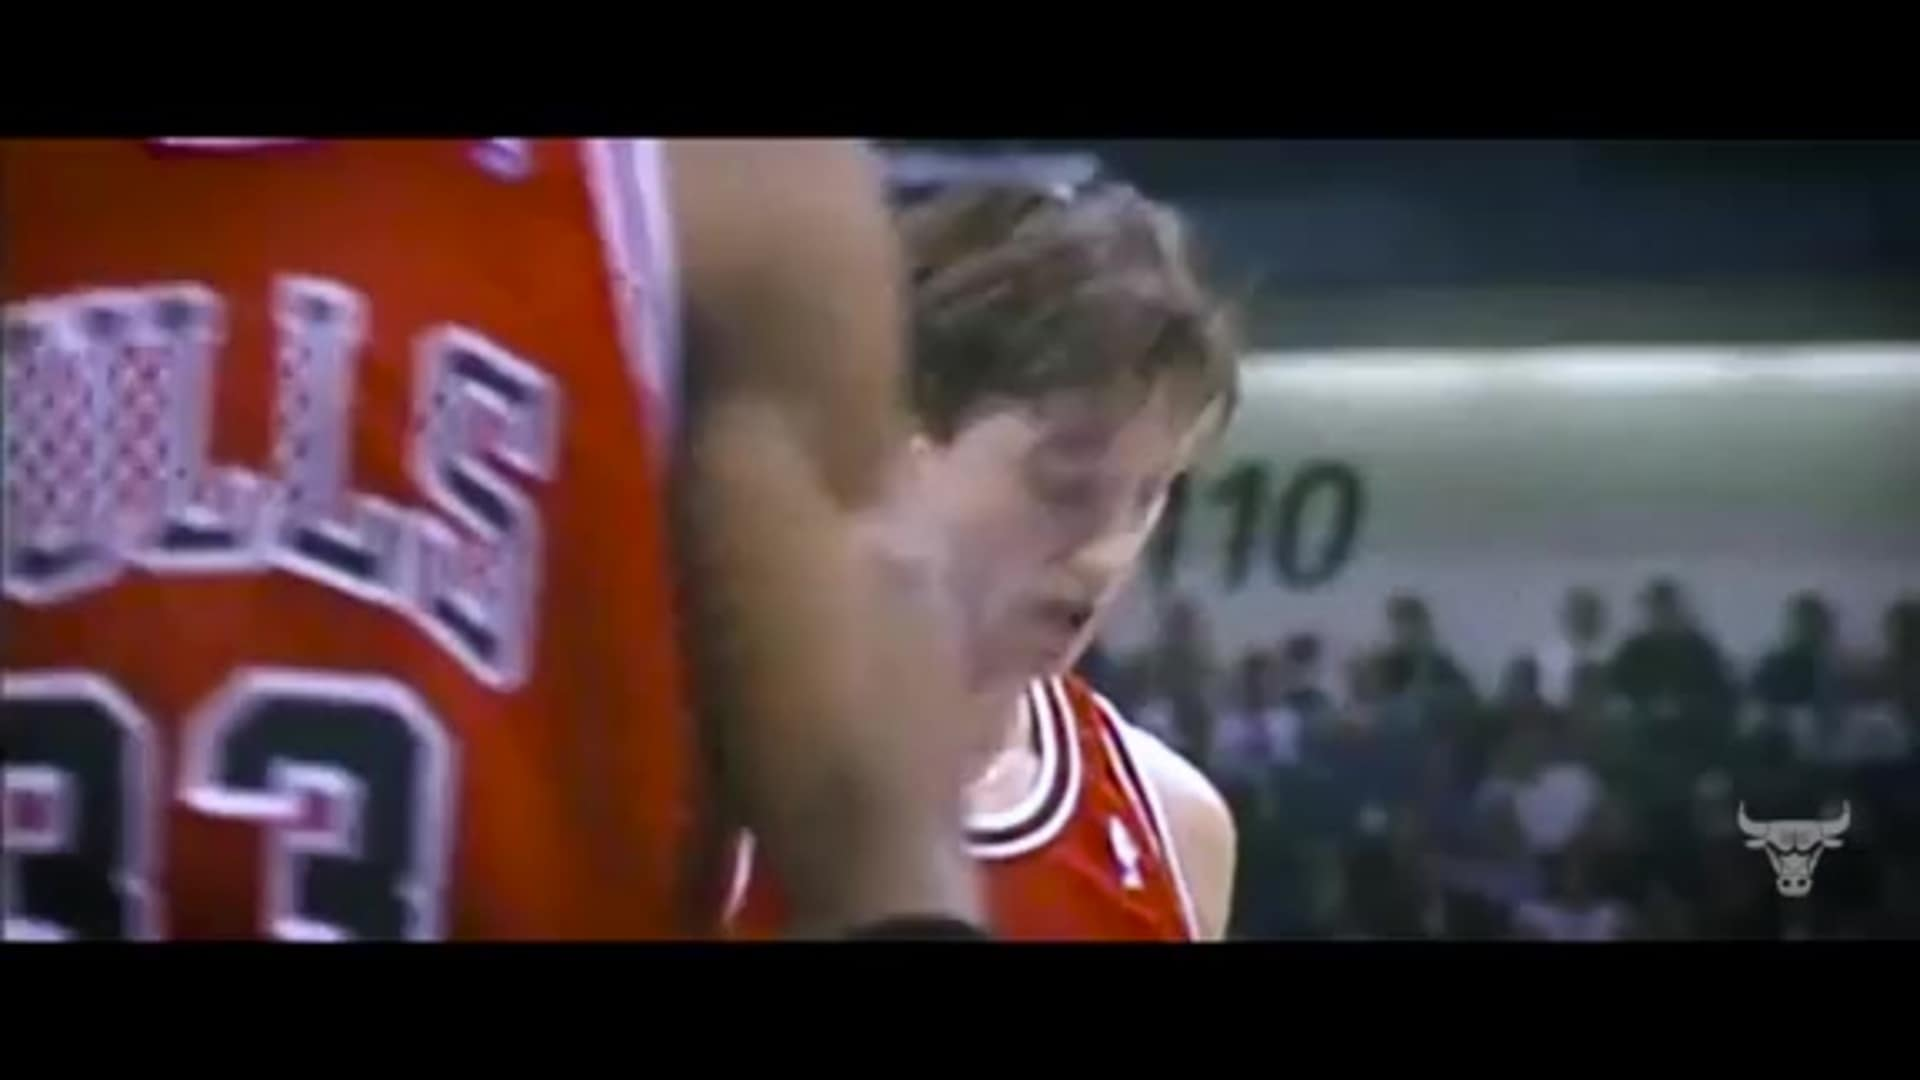 Toni Kukoc shares game rituals from the 90s